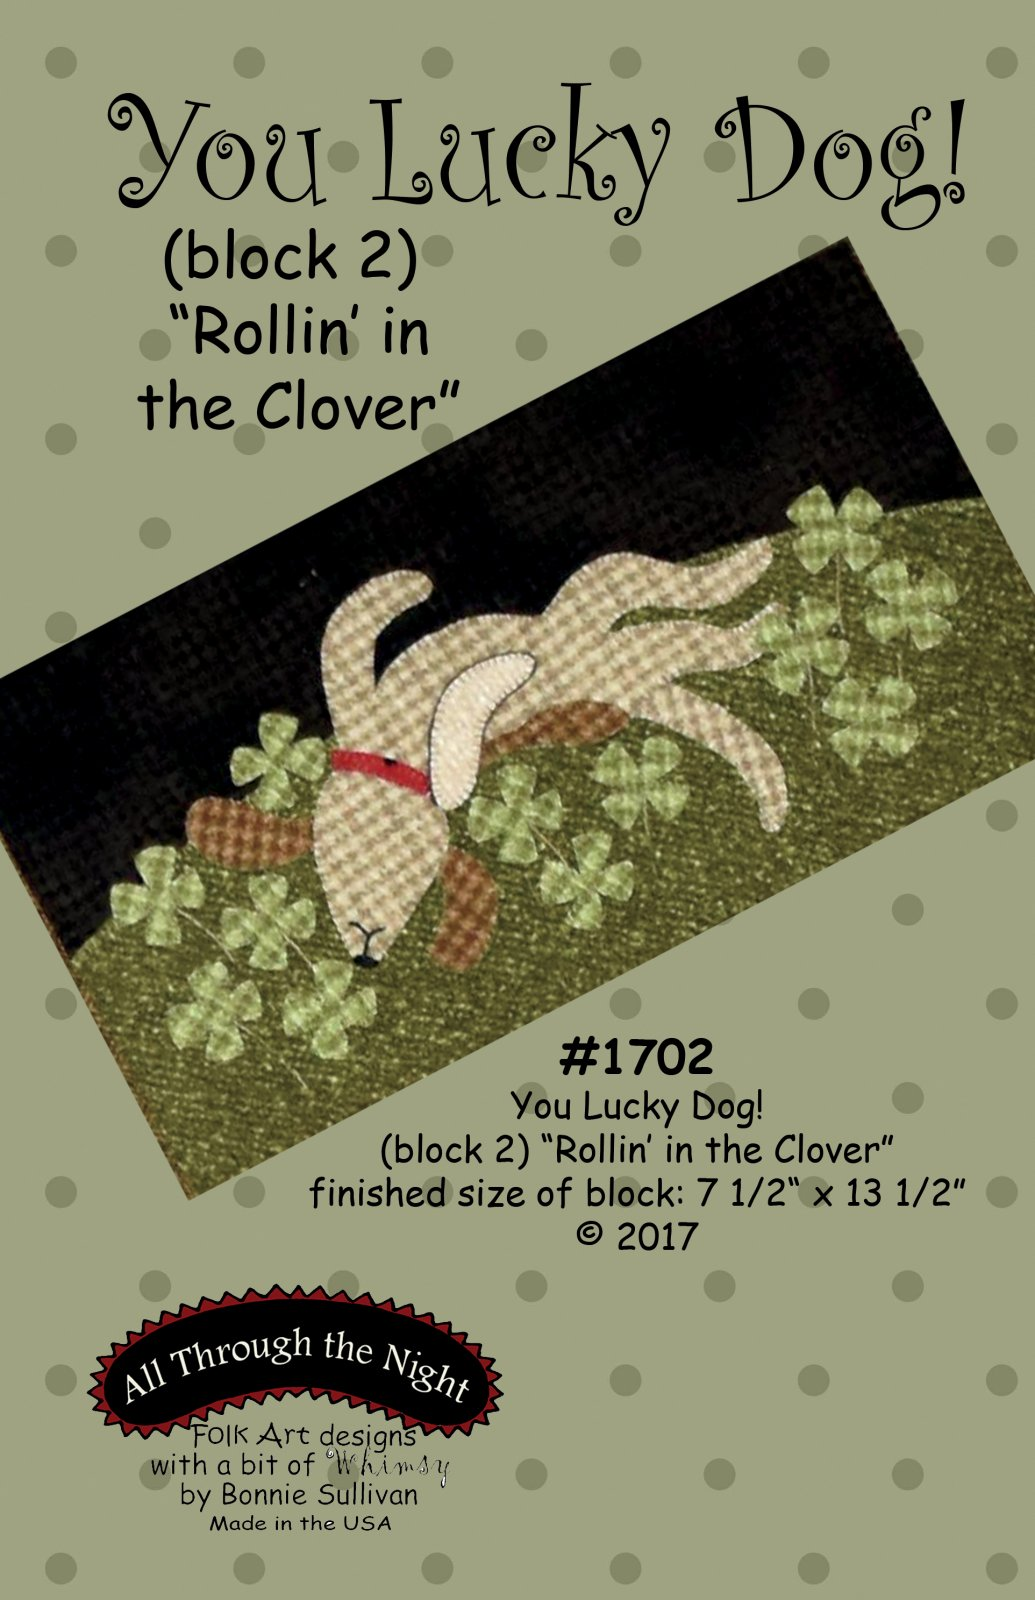 1702 You Lucky Dog Rollin' in the Clover